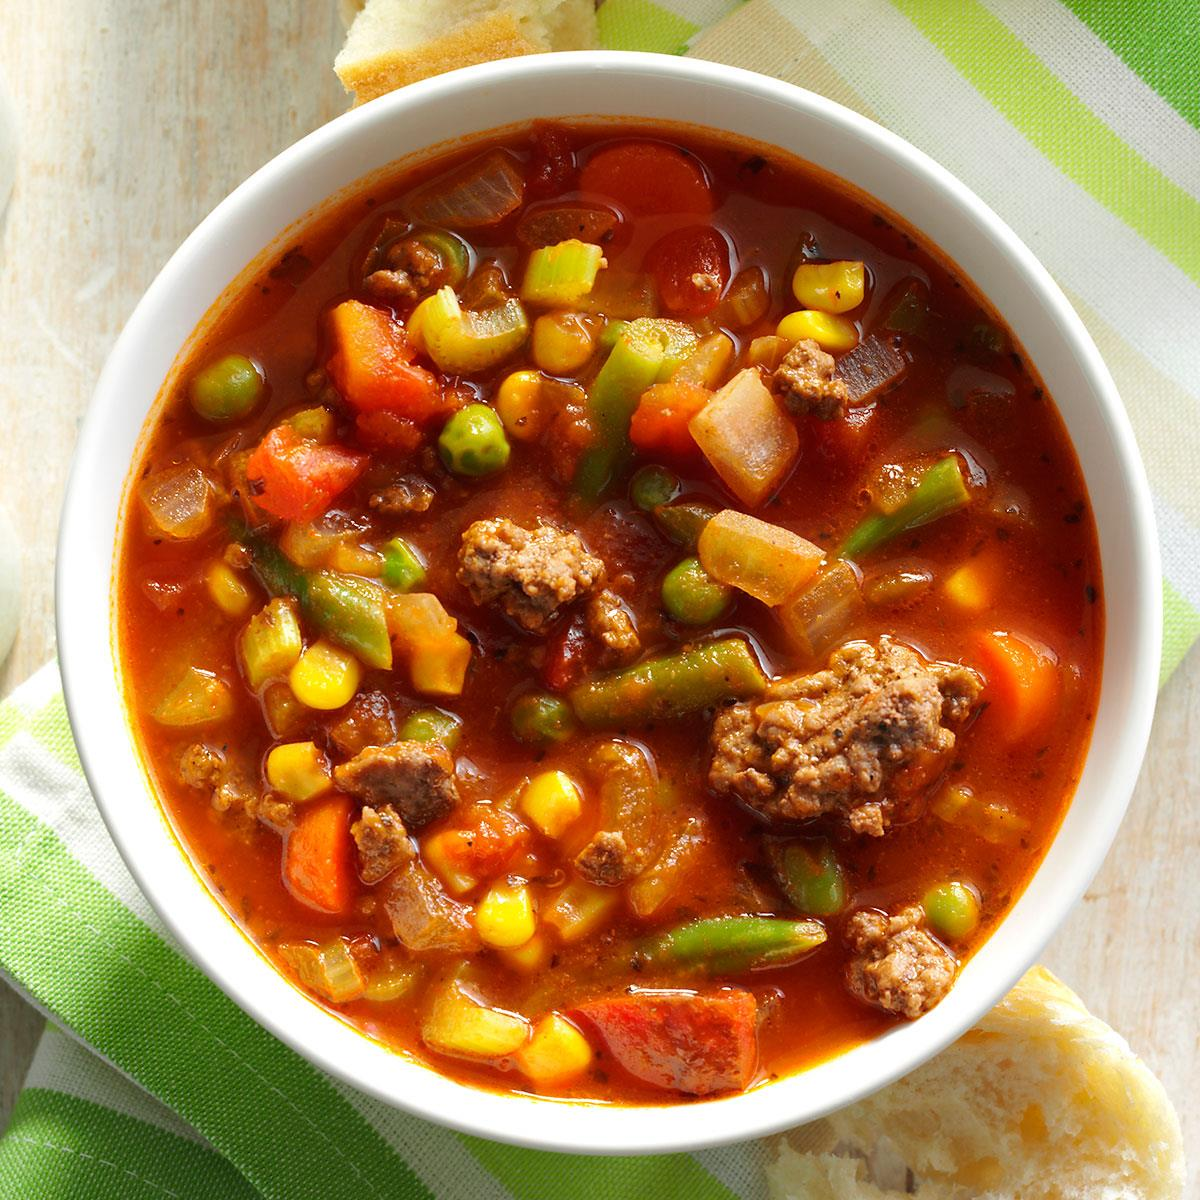 Vegetable soup recipe with ground beef and veg all